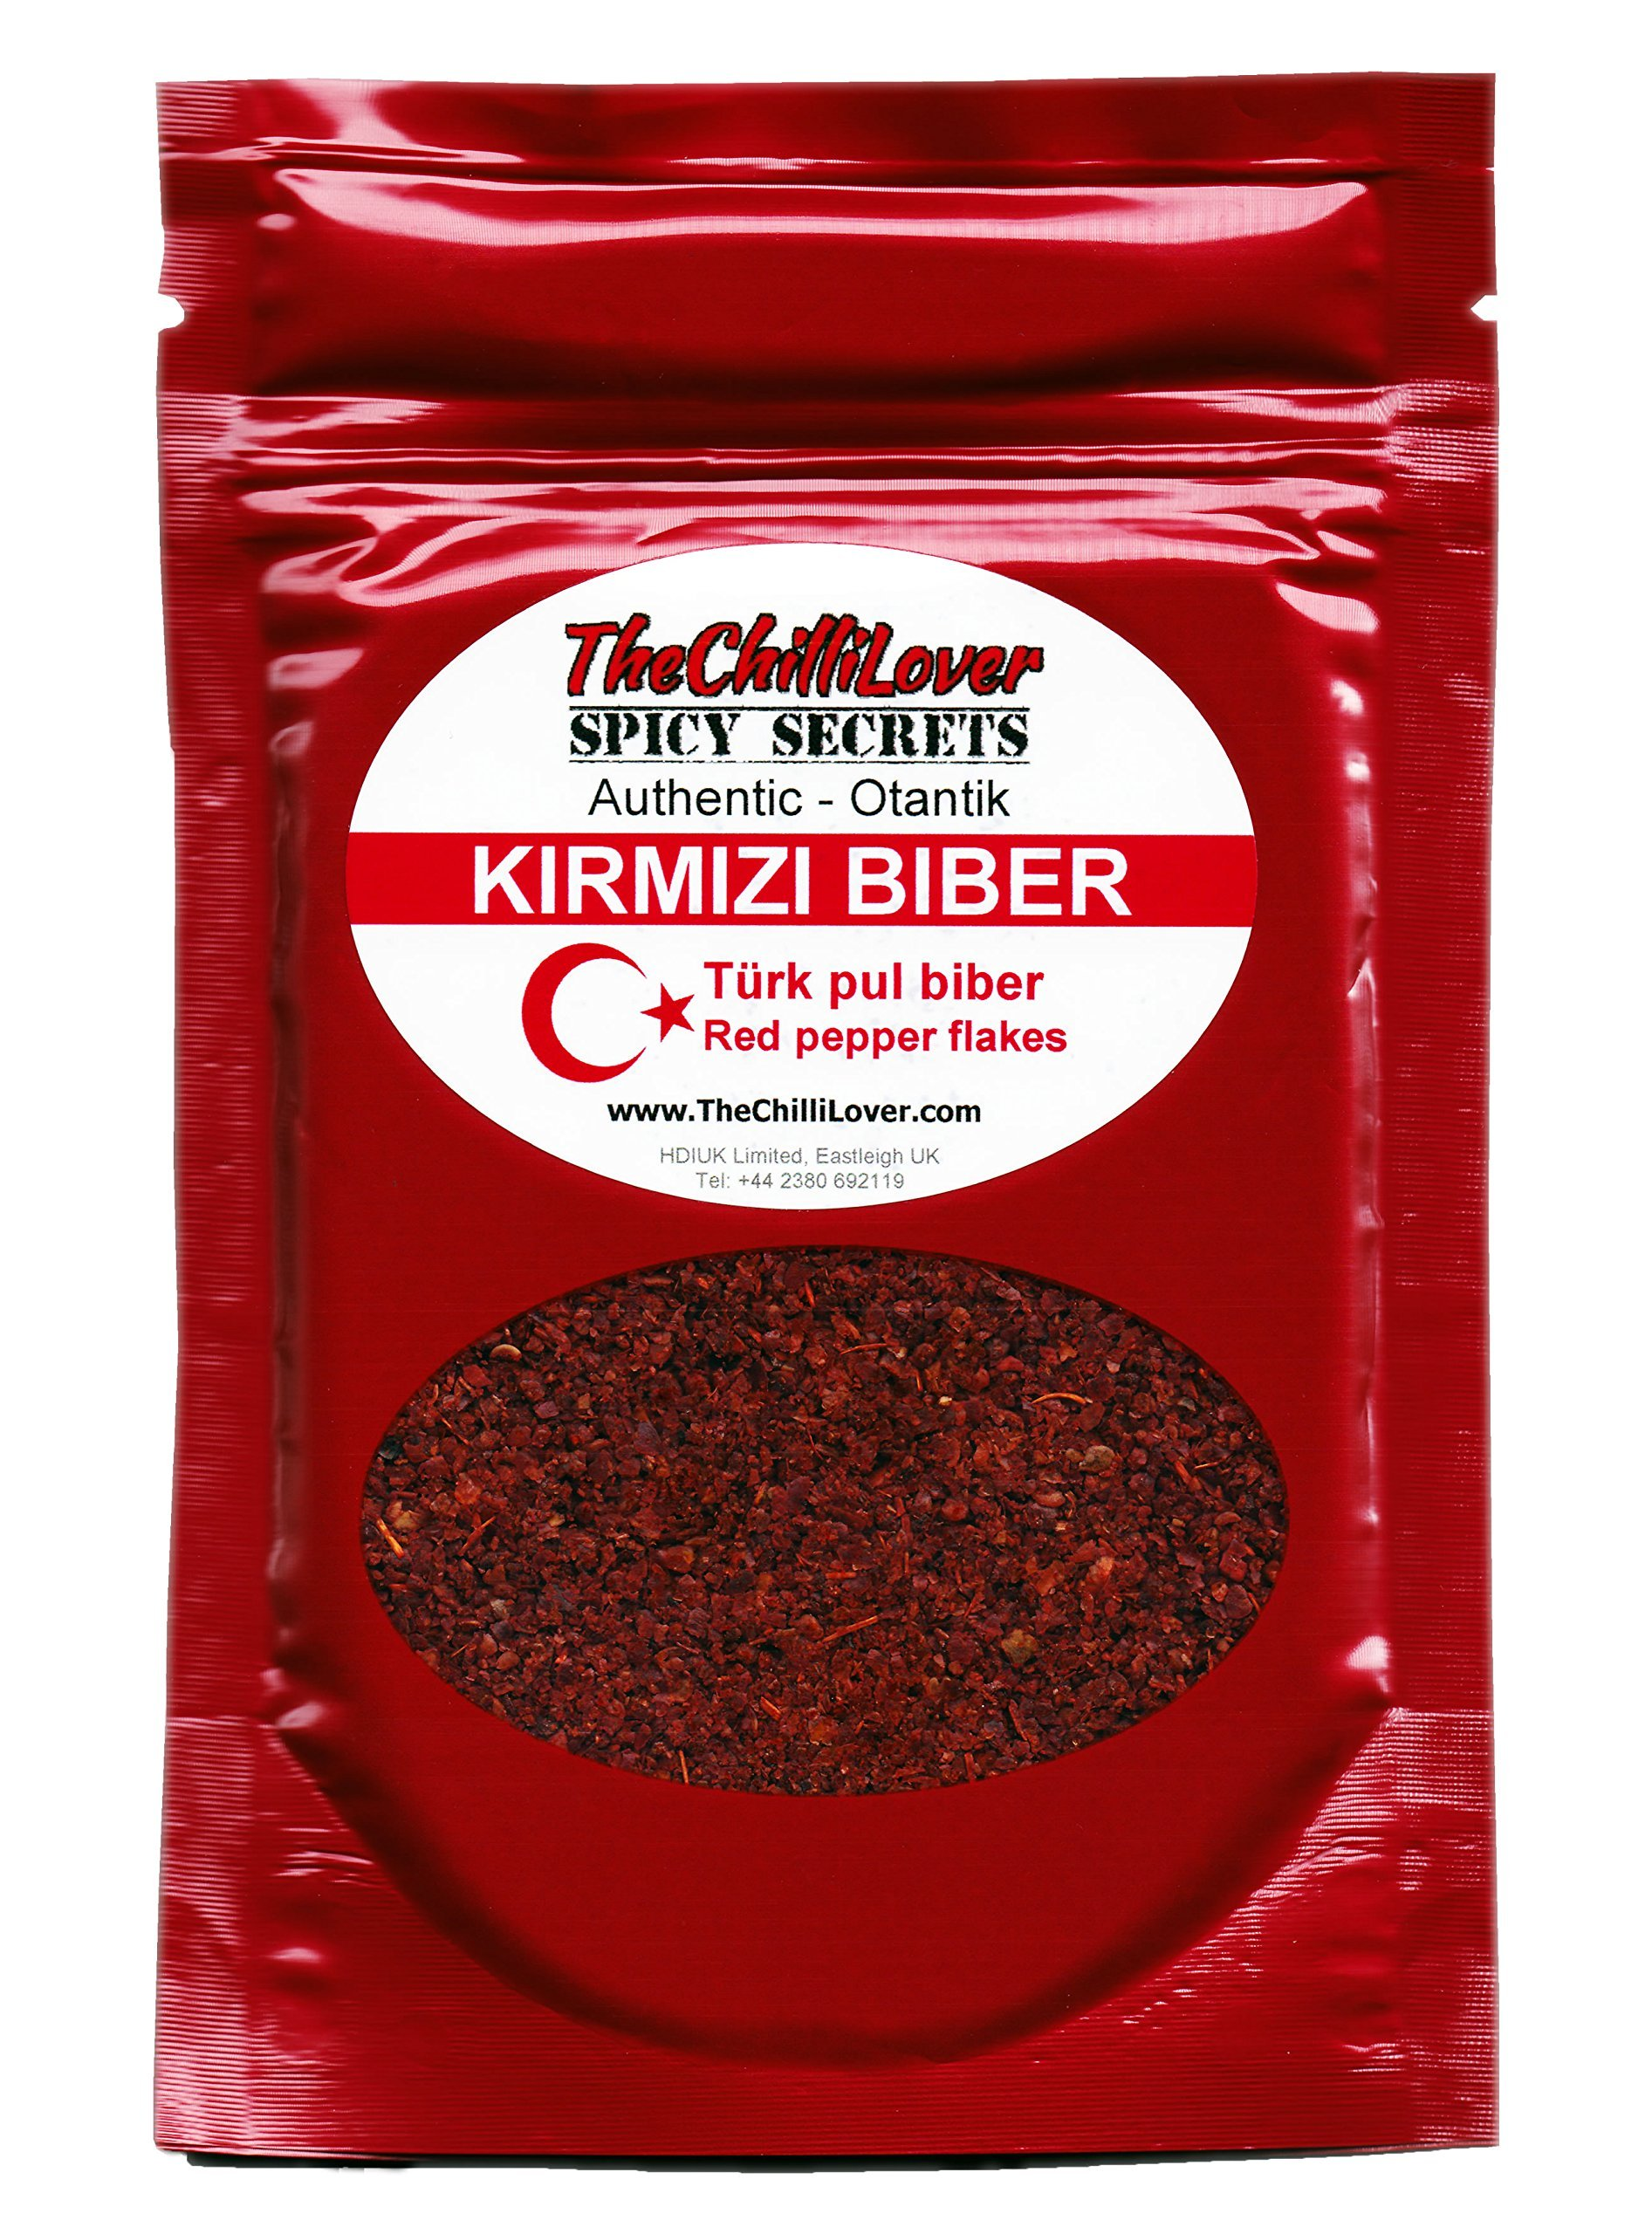 TheChilliLover Pouches of Turk Kirmizibiber, Authentic Spice For Cooking, Seasoning Food